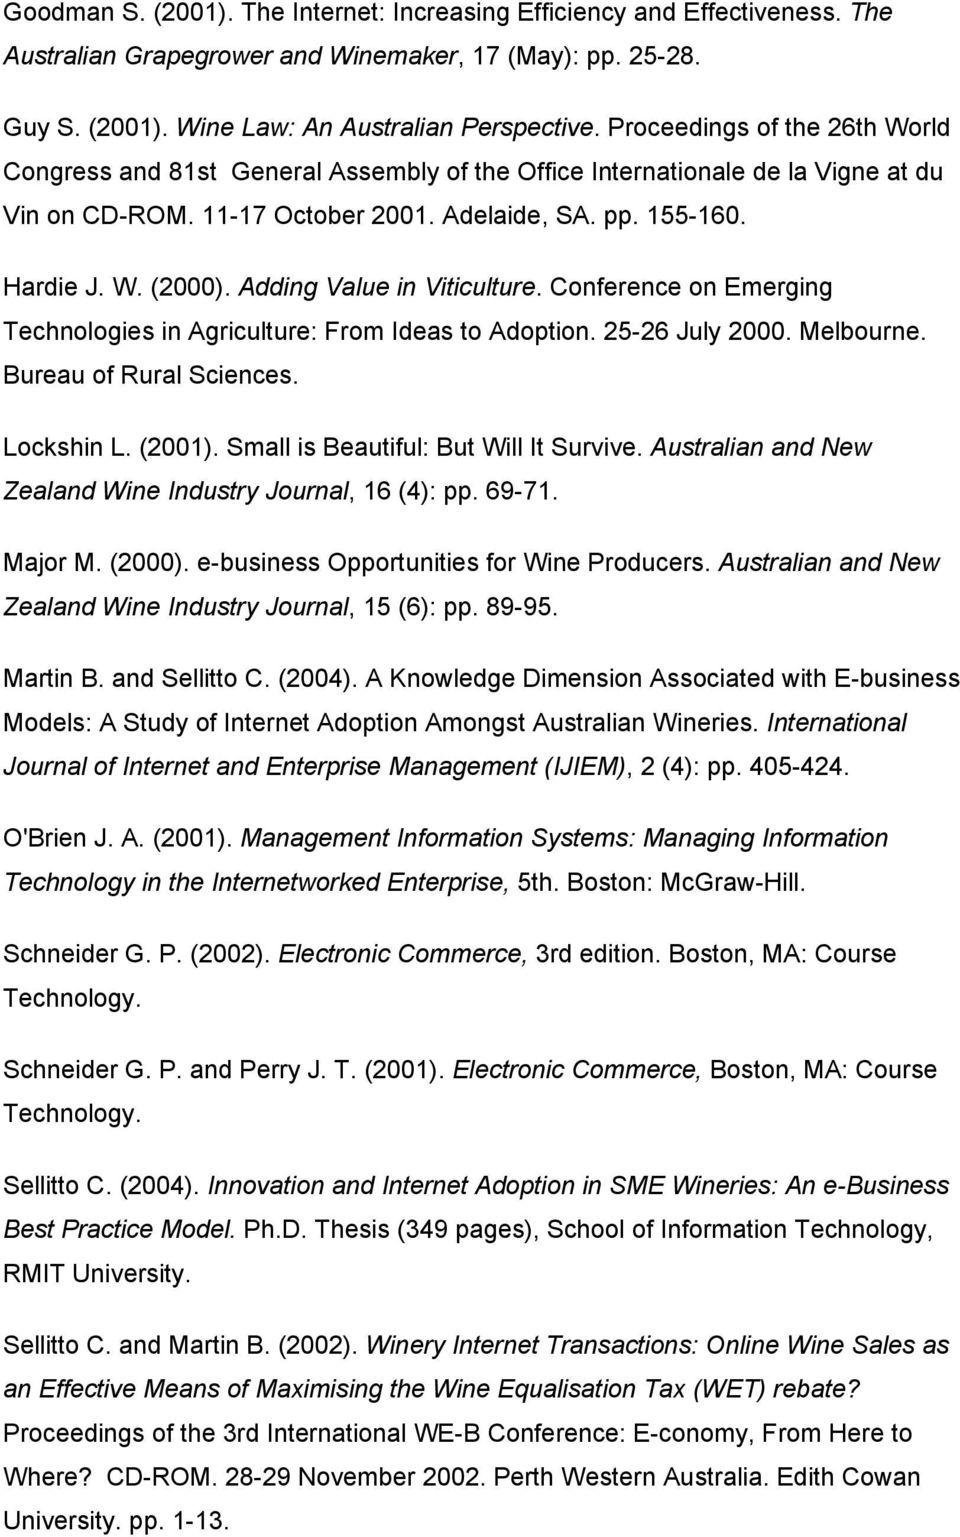 Adding Value in Viticulture. Conference on Emerging Technologies in Agriculture: From Ideas to Adoption. 25-26 July 2000. Melbourne. Bureau of Rural Sciences. Lockshin L. (2001).